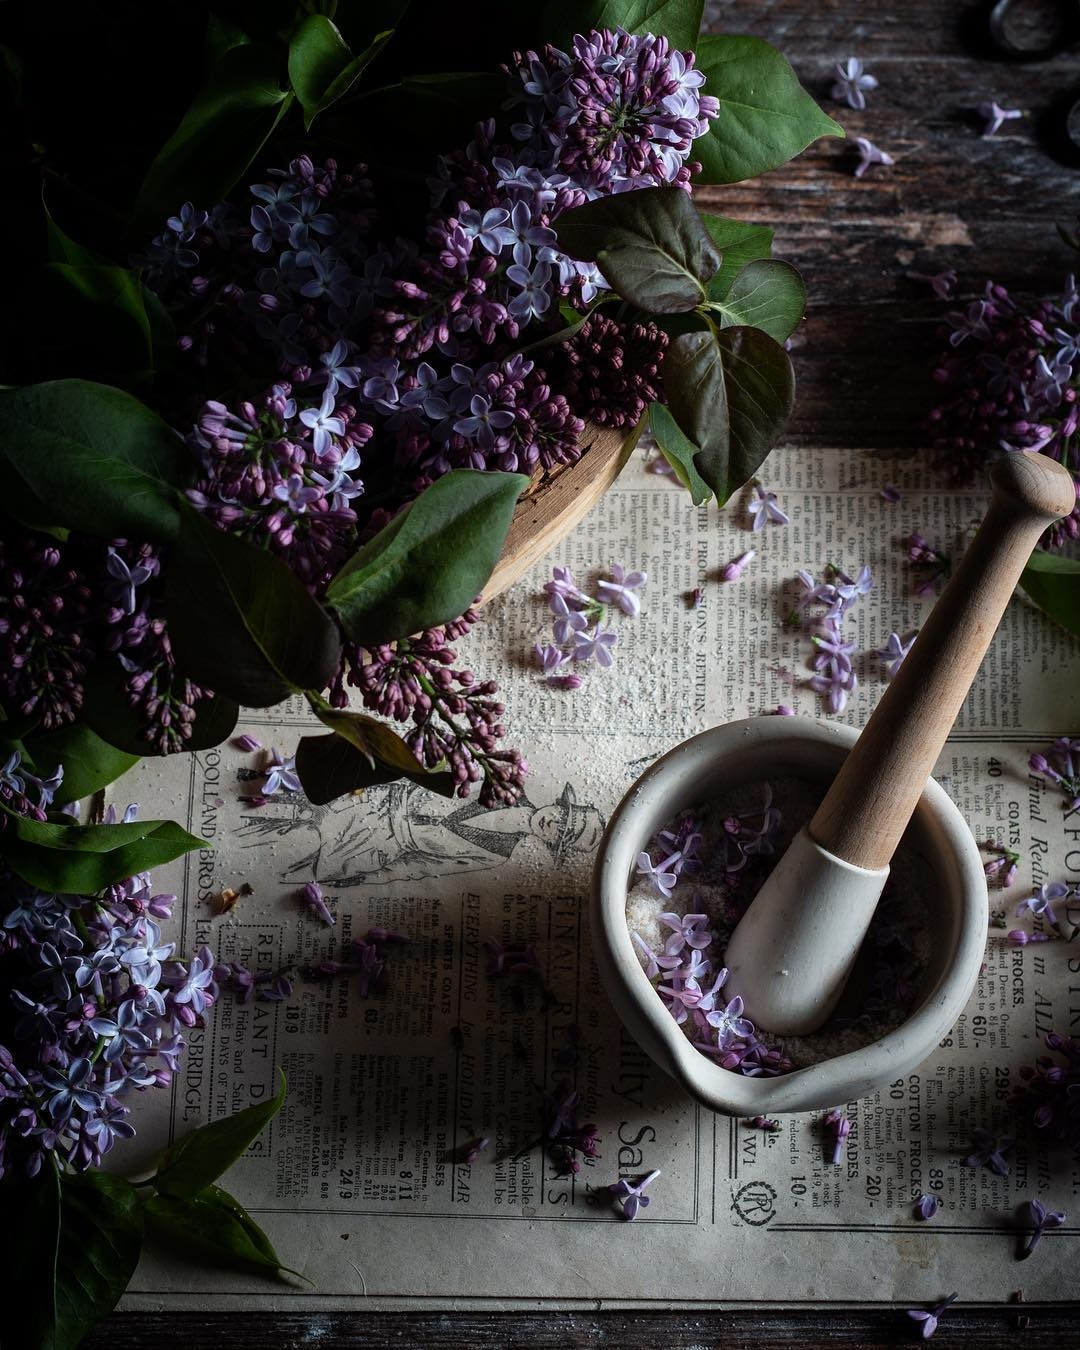 Beautiful lilac flowers being made into delicious lilac sugar. Source:  @twiggstudios